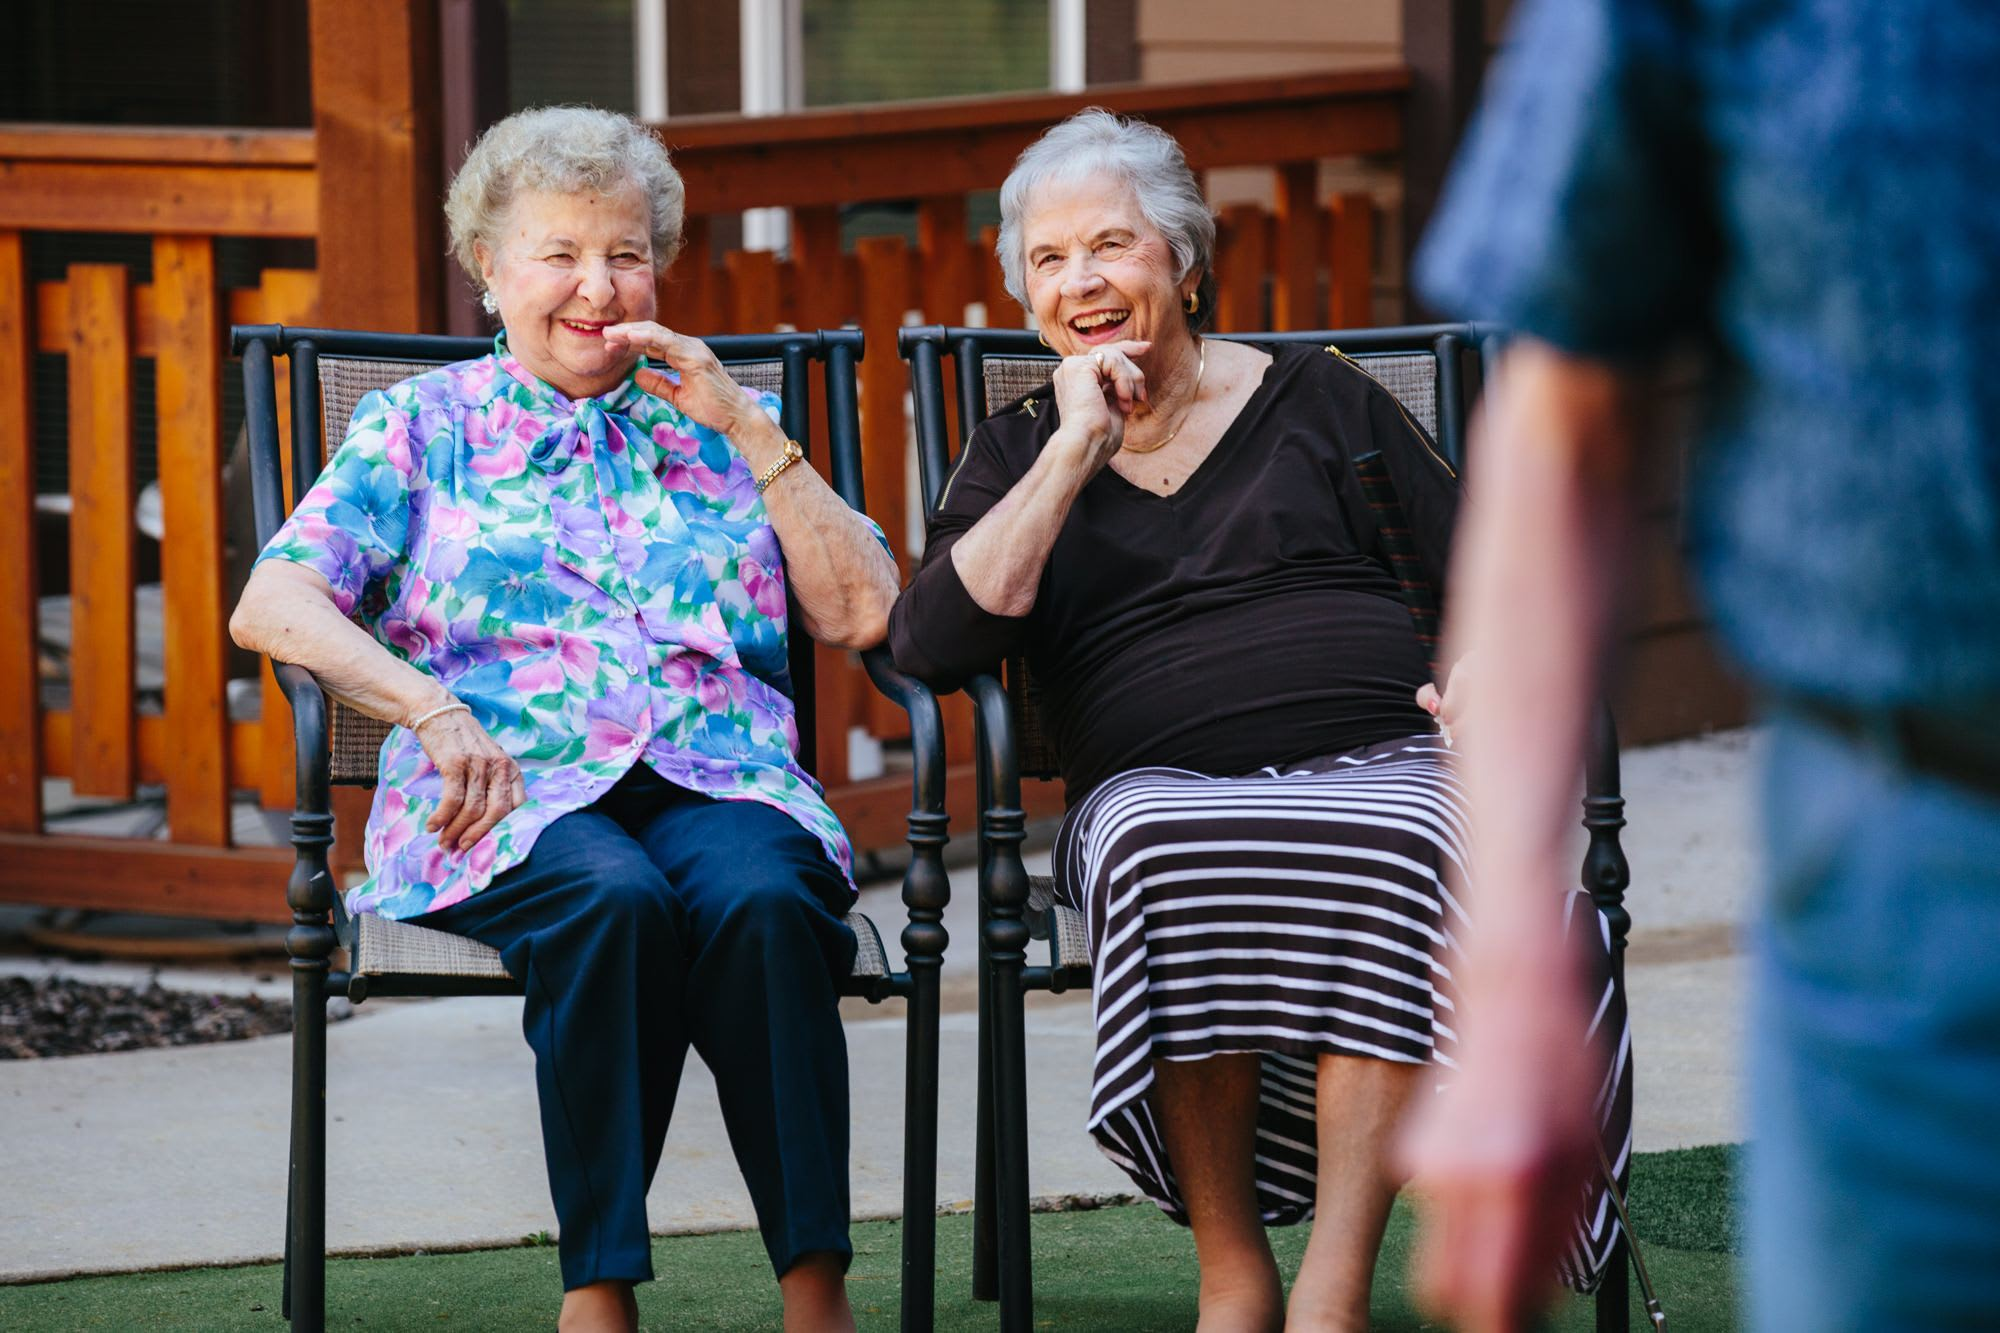 Residents enjoy a moment together on the courtyard in Missoula